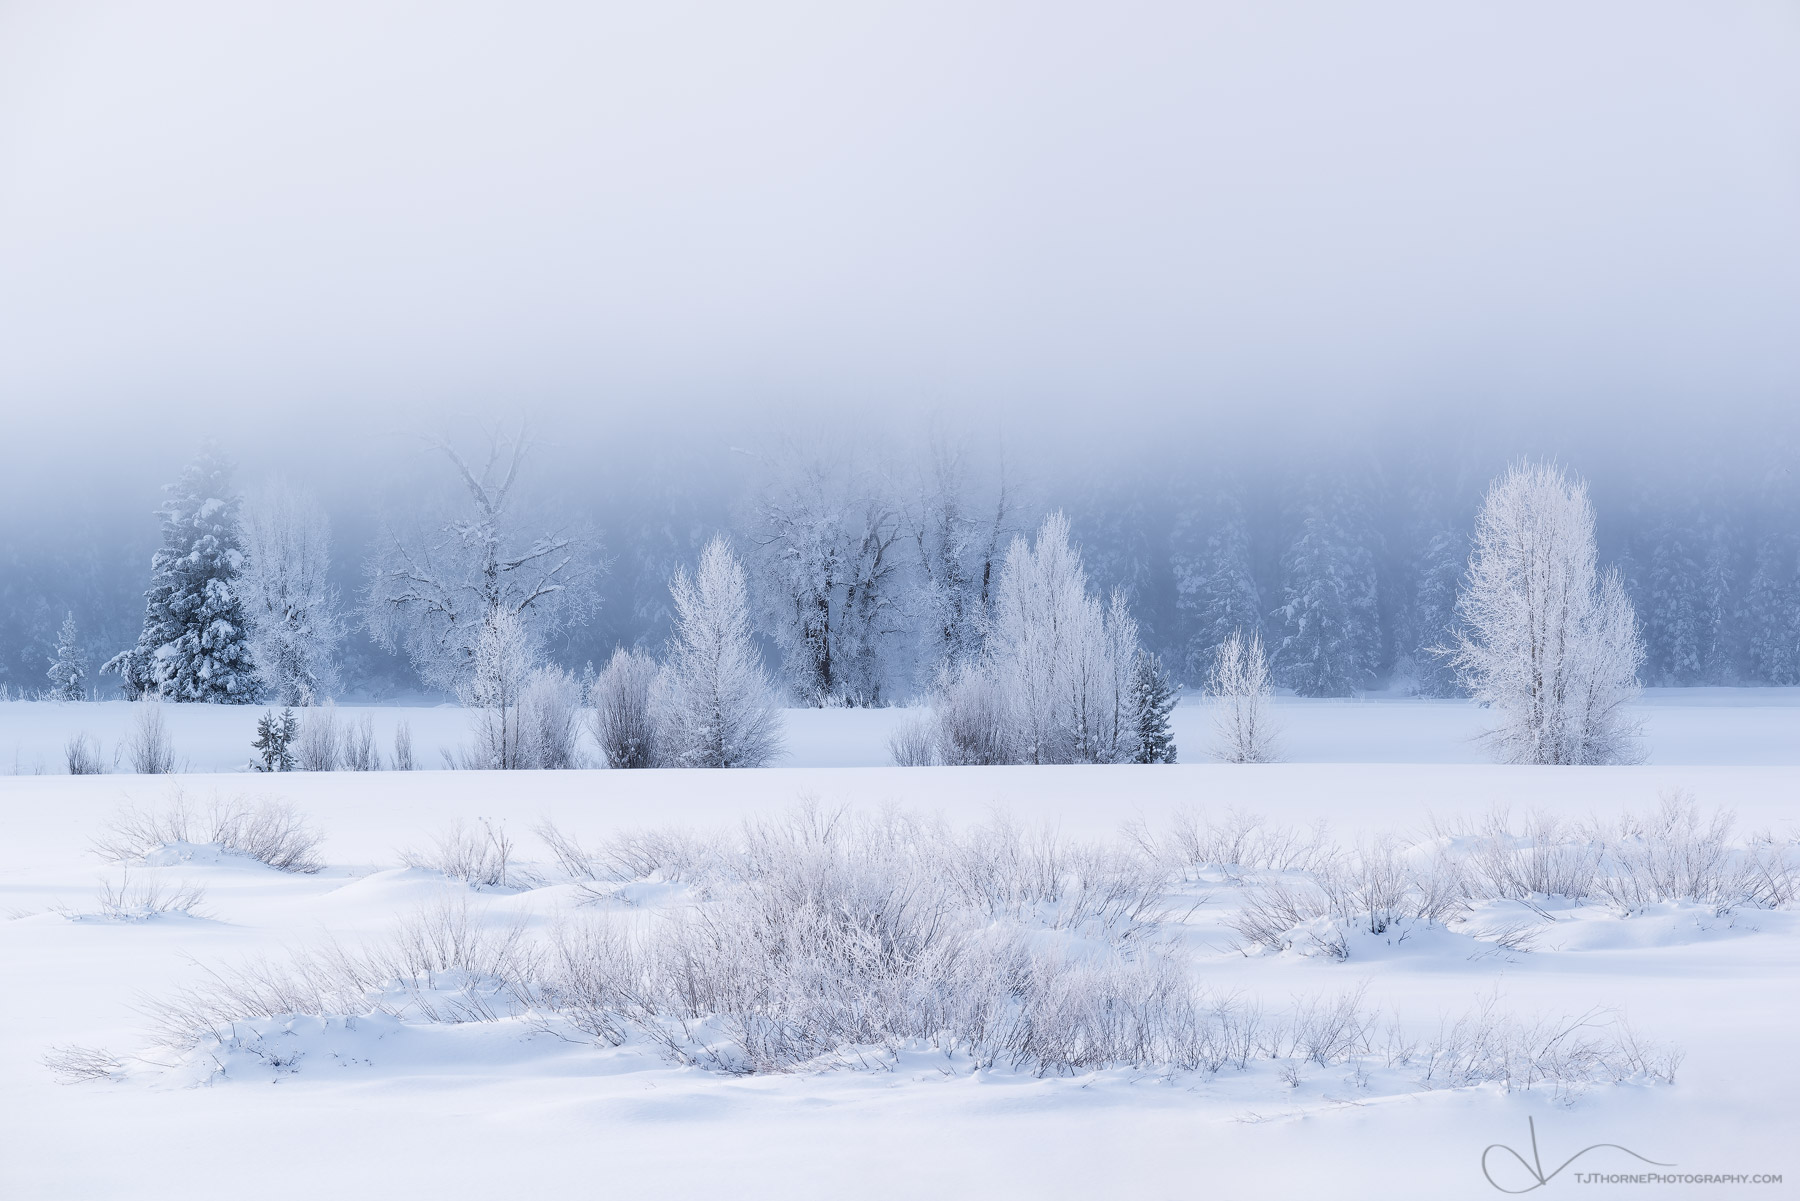 FINE ART LIMITED EDITION OF 100 A near perfectly spaced arrangement of frost covered trees and brush on a snowy winter morning...